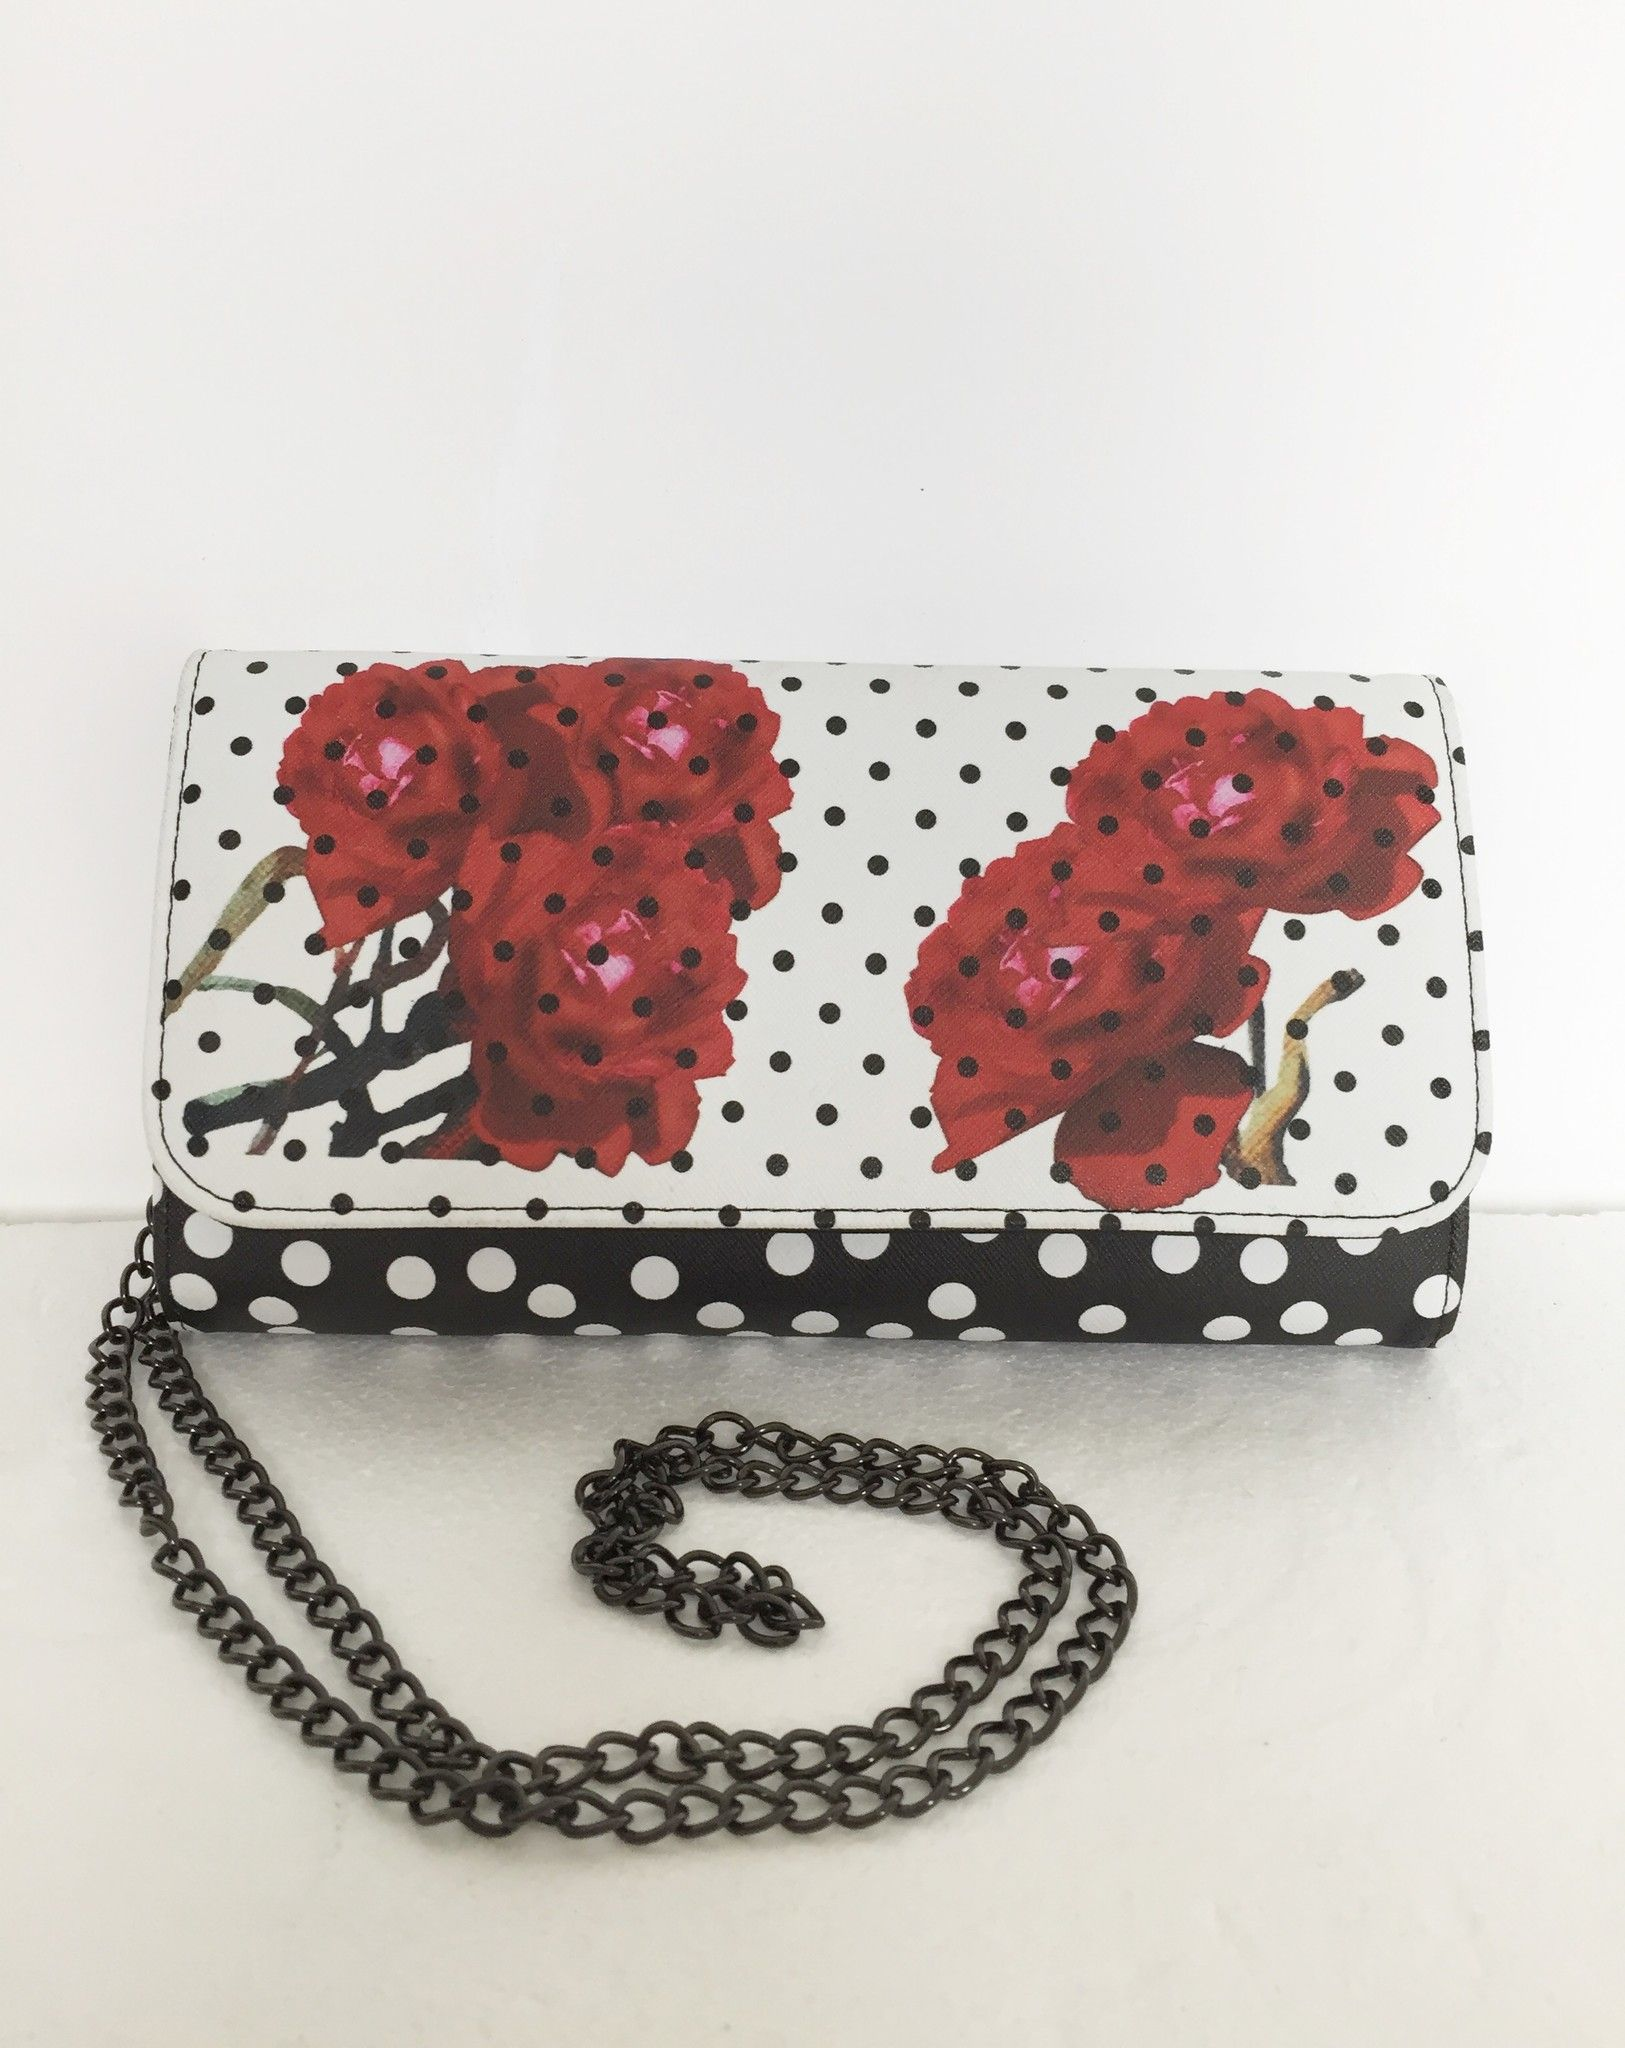 LadyBug clutch bag and flowers with metallic strap Cod.5625